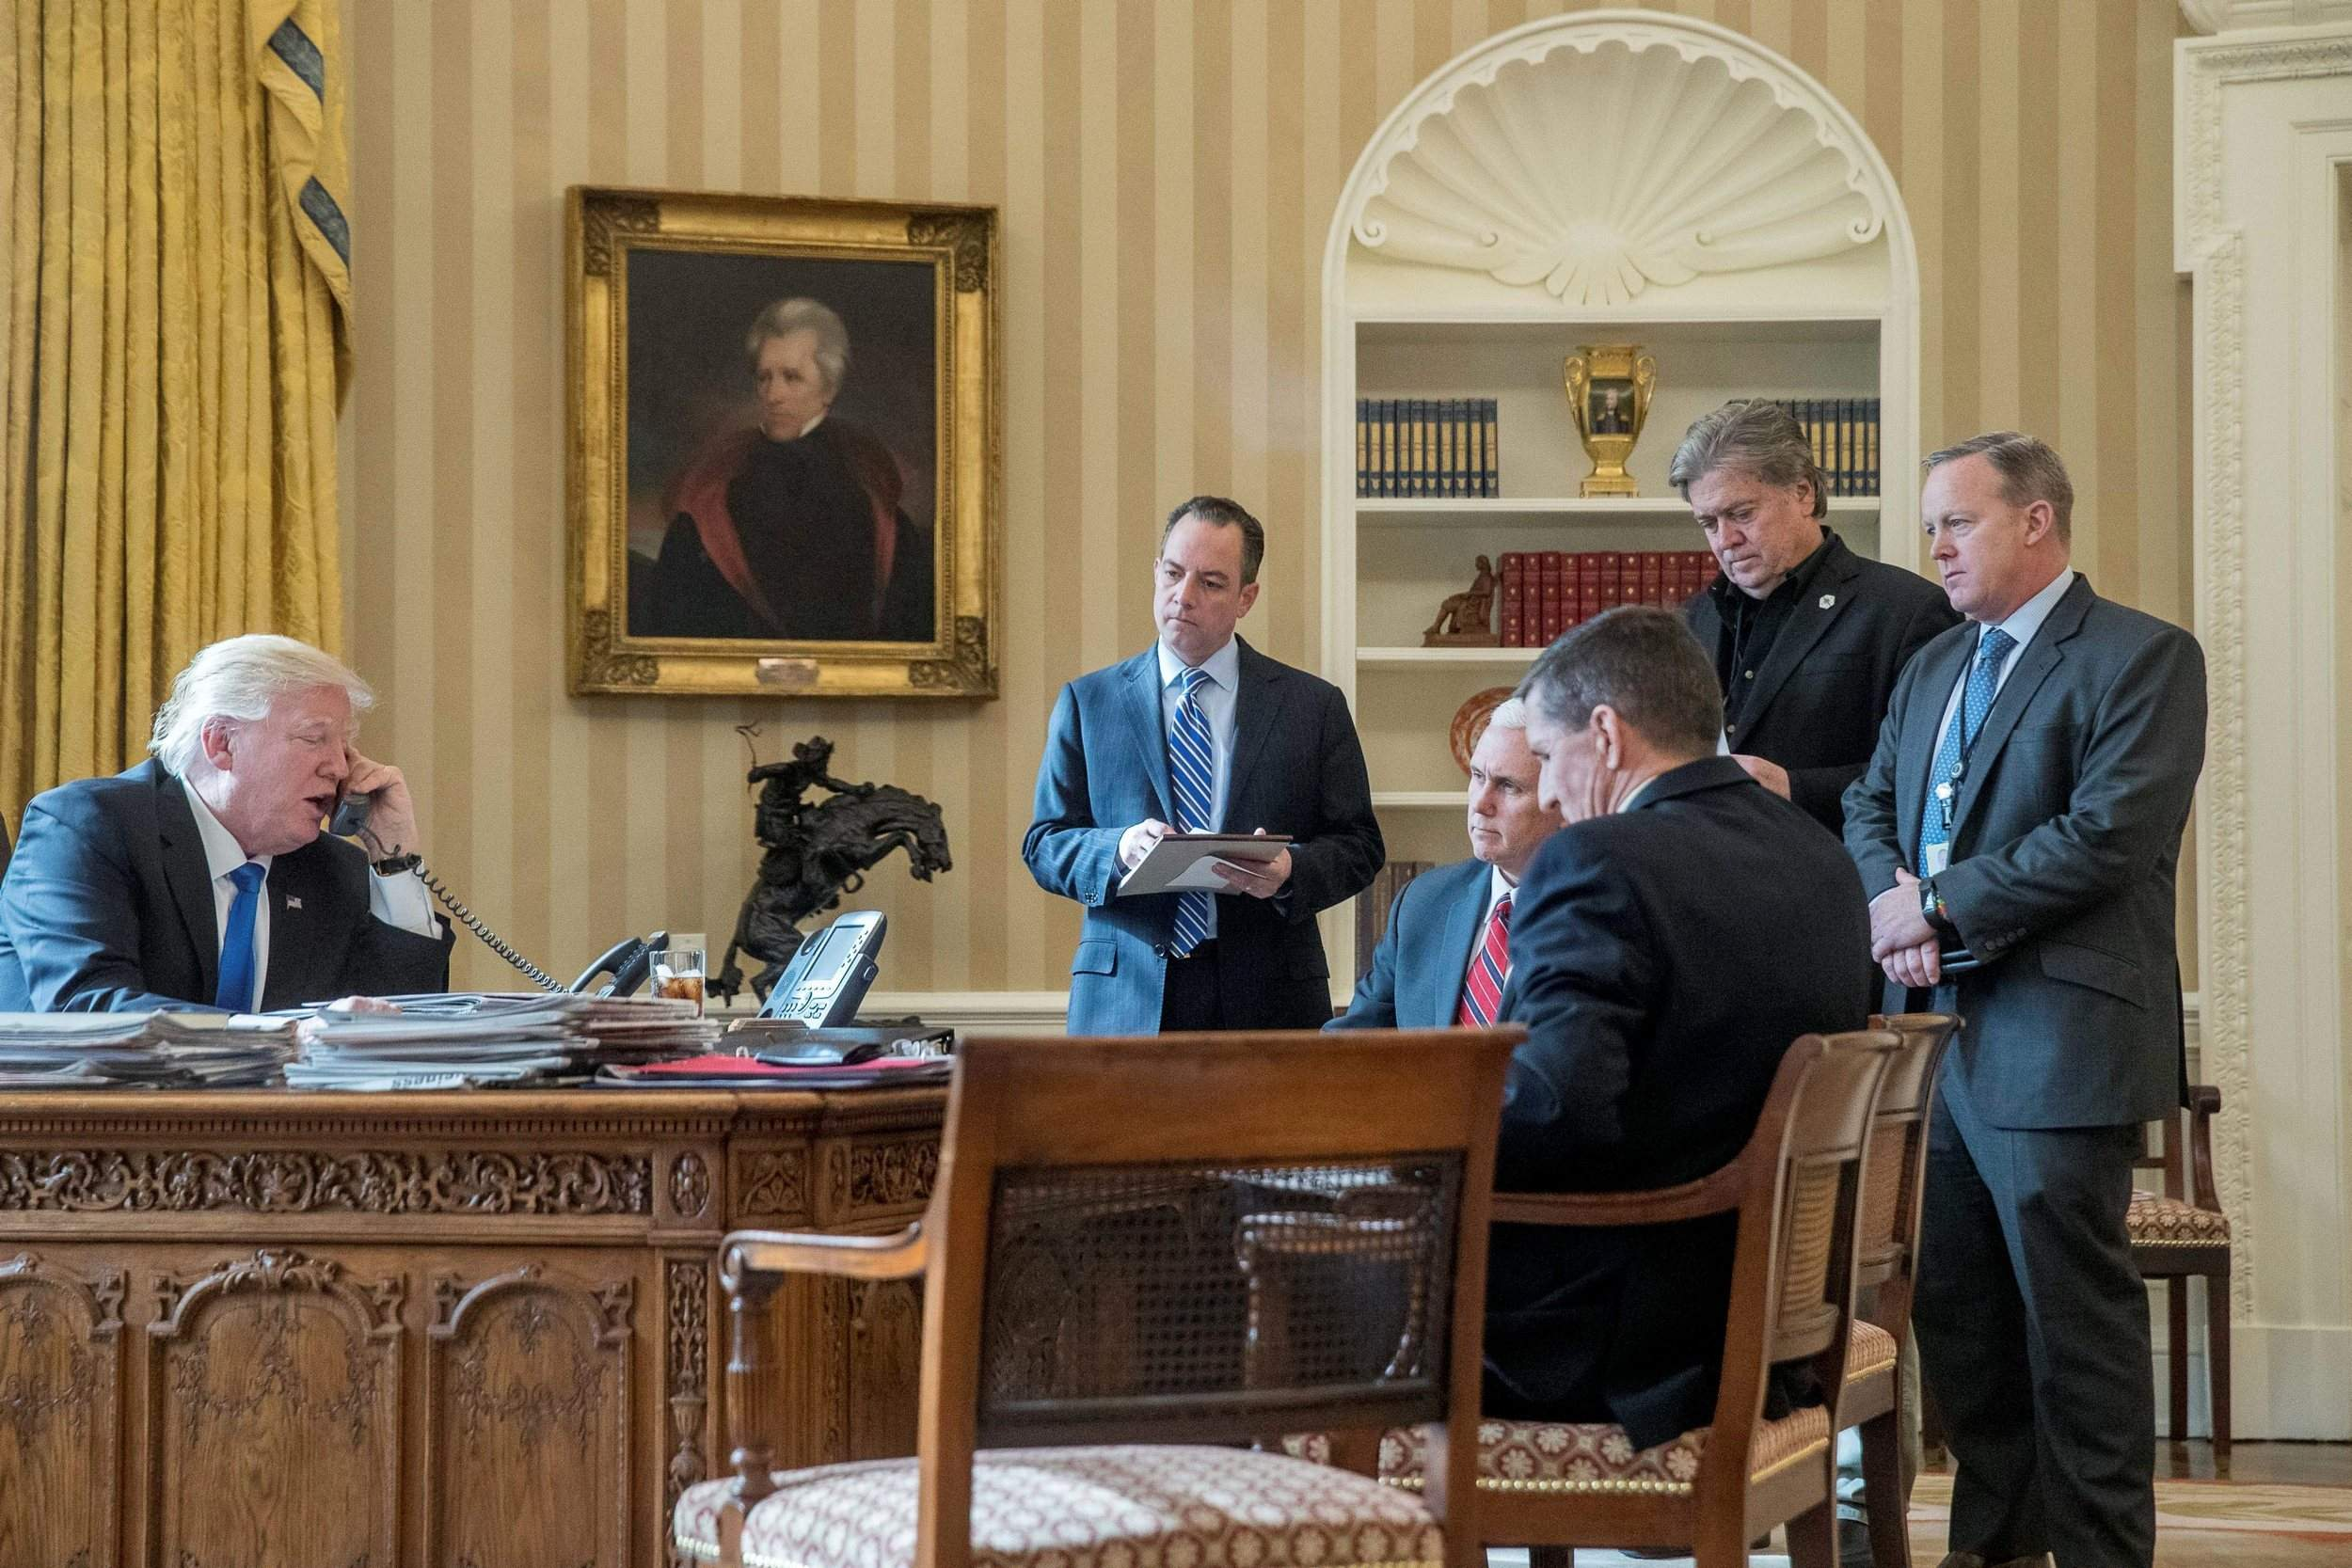 Trump and his advisers in the Oval Office.